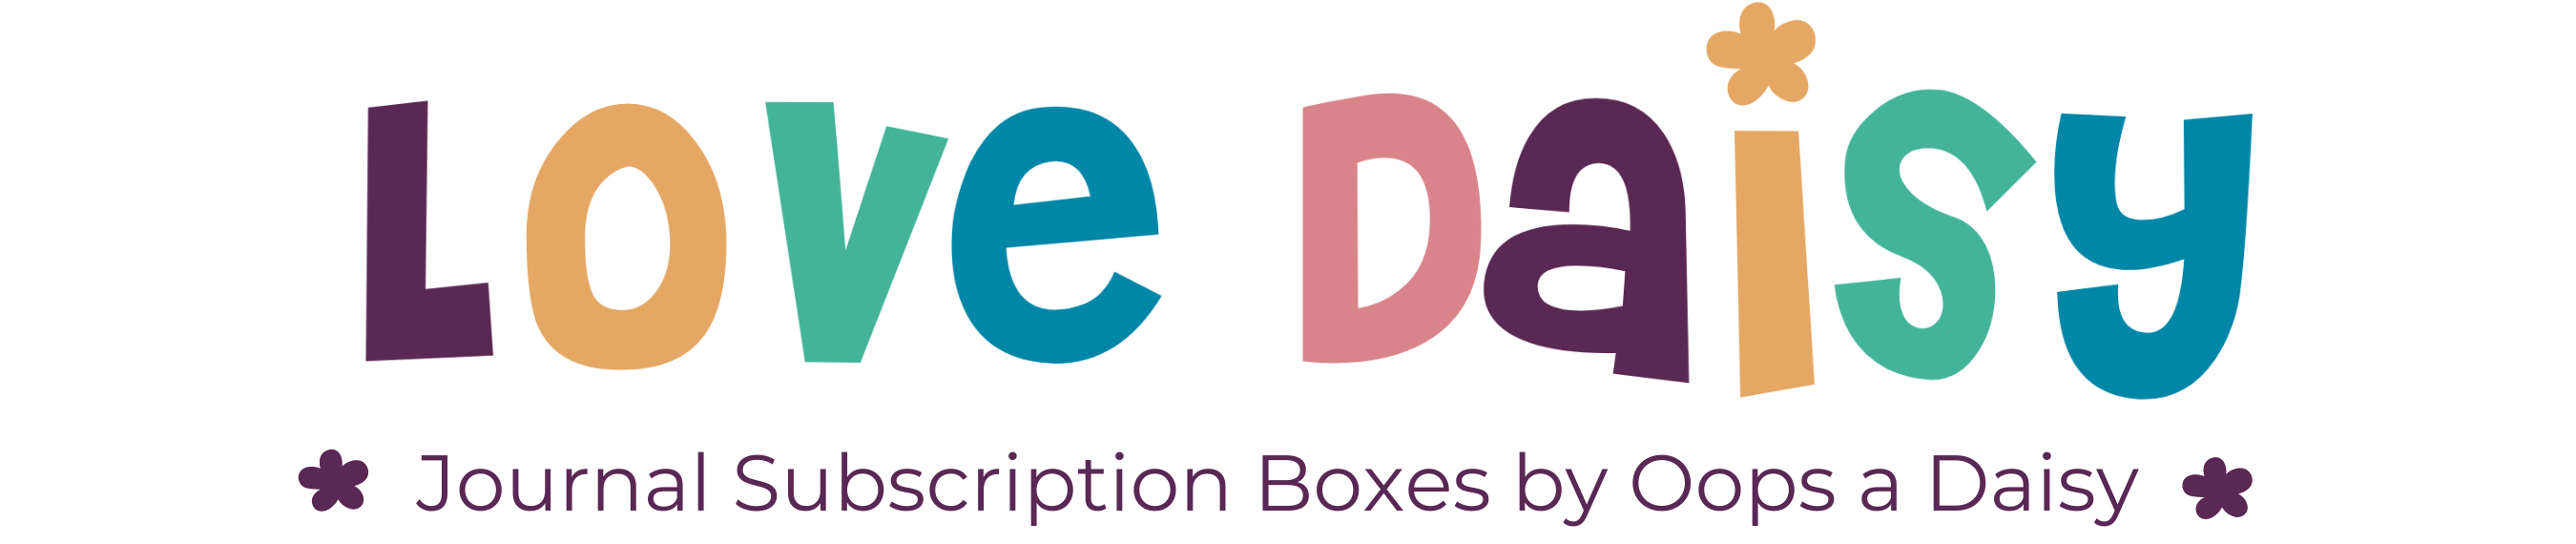 Love Daisy Journal Subscription Boxes